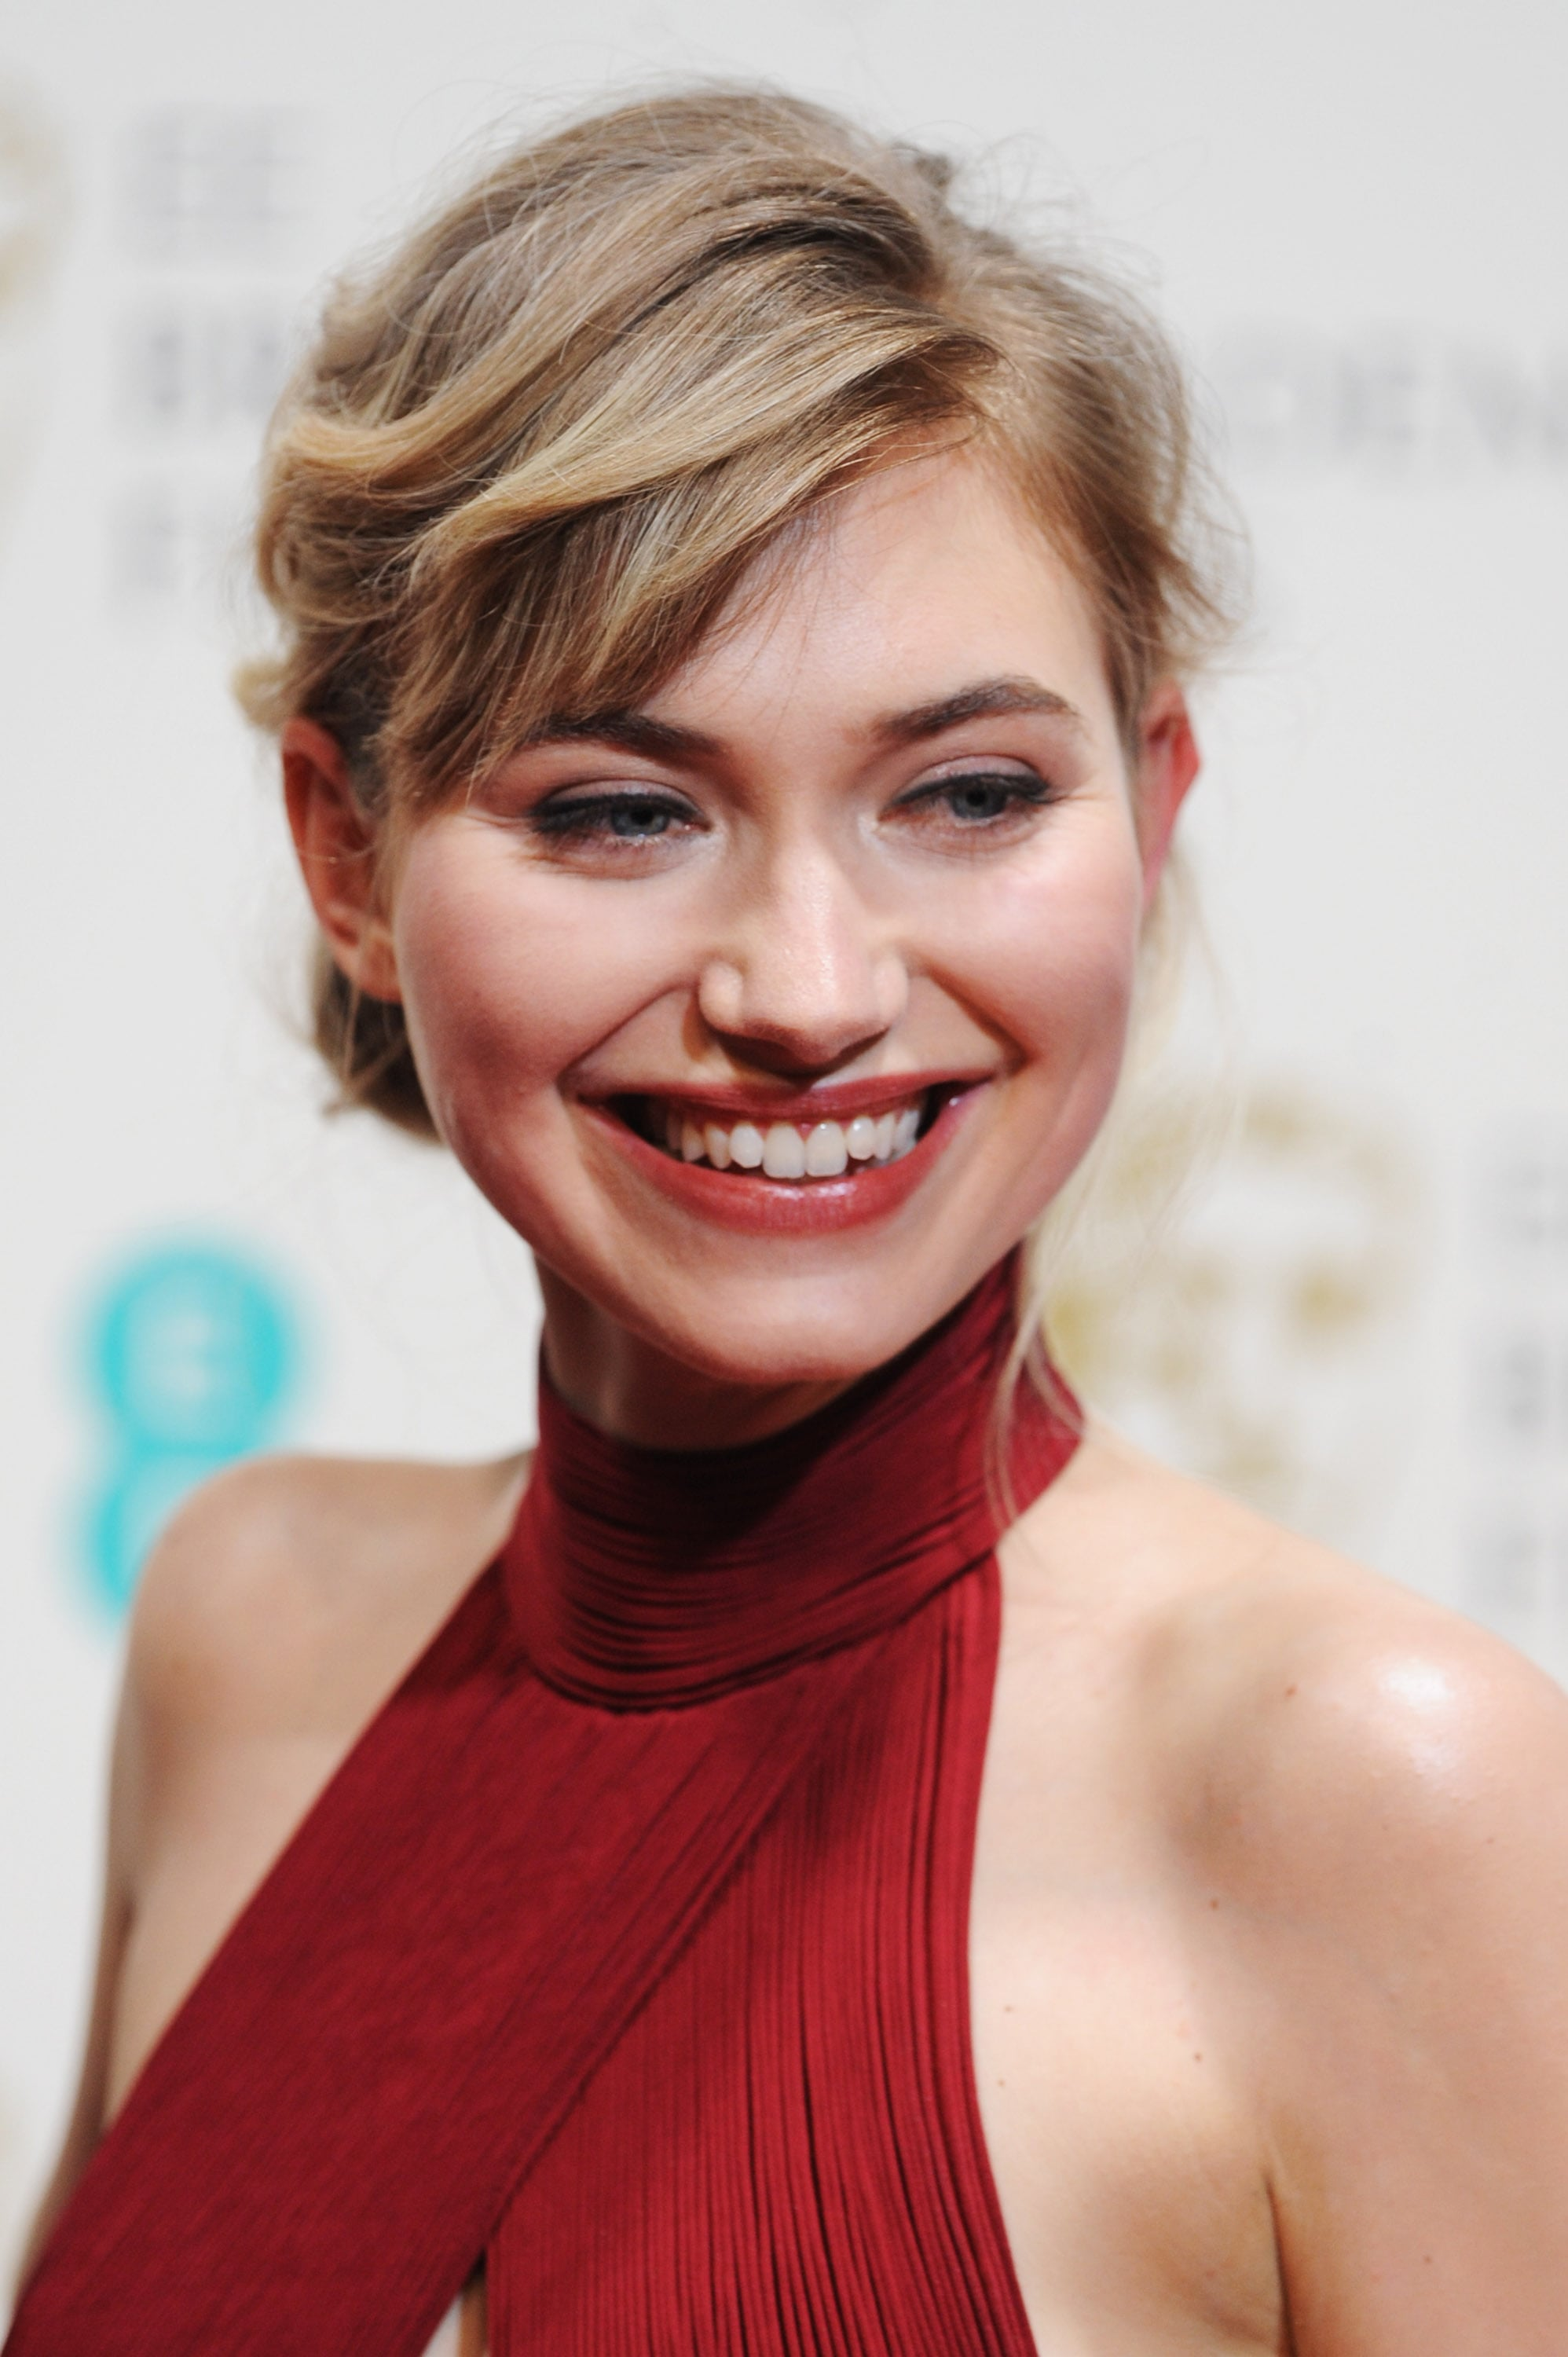 Imogen Poots | The BAFTAs Give Us a Preview of Oscars